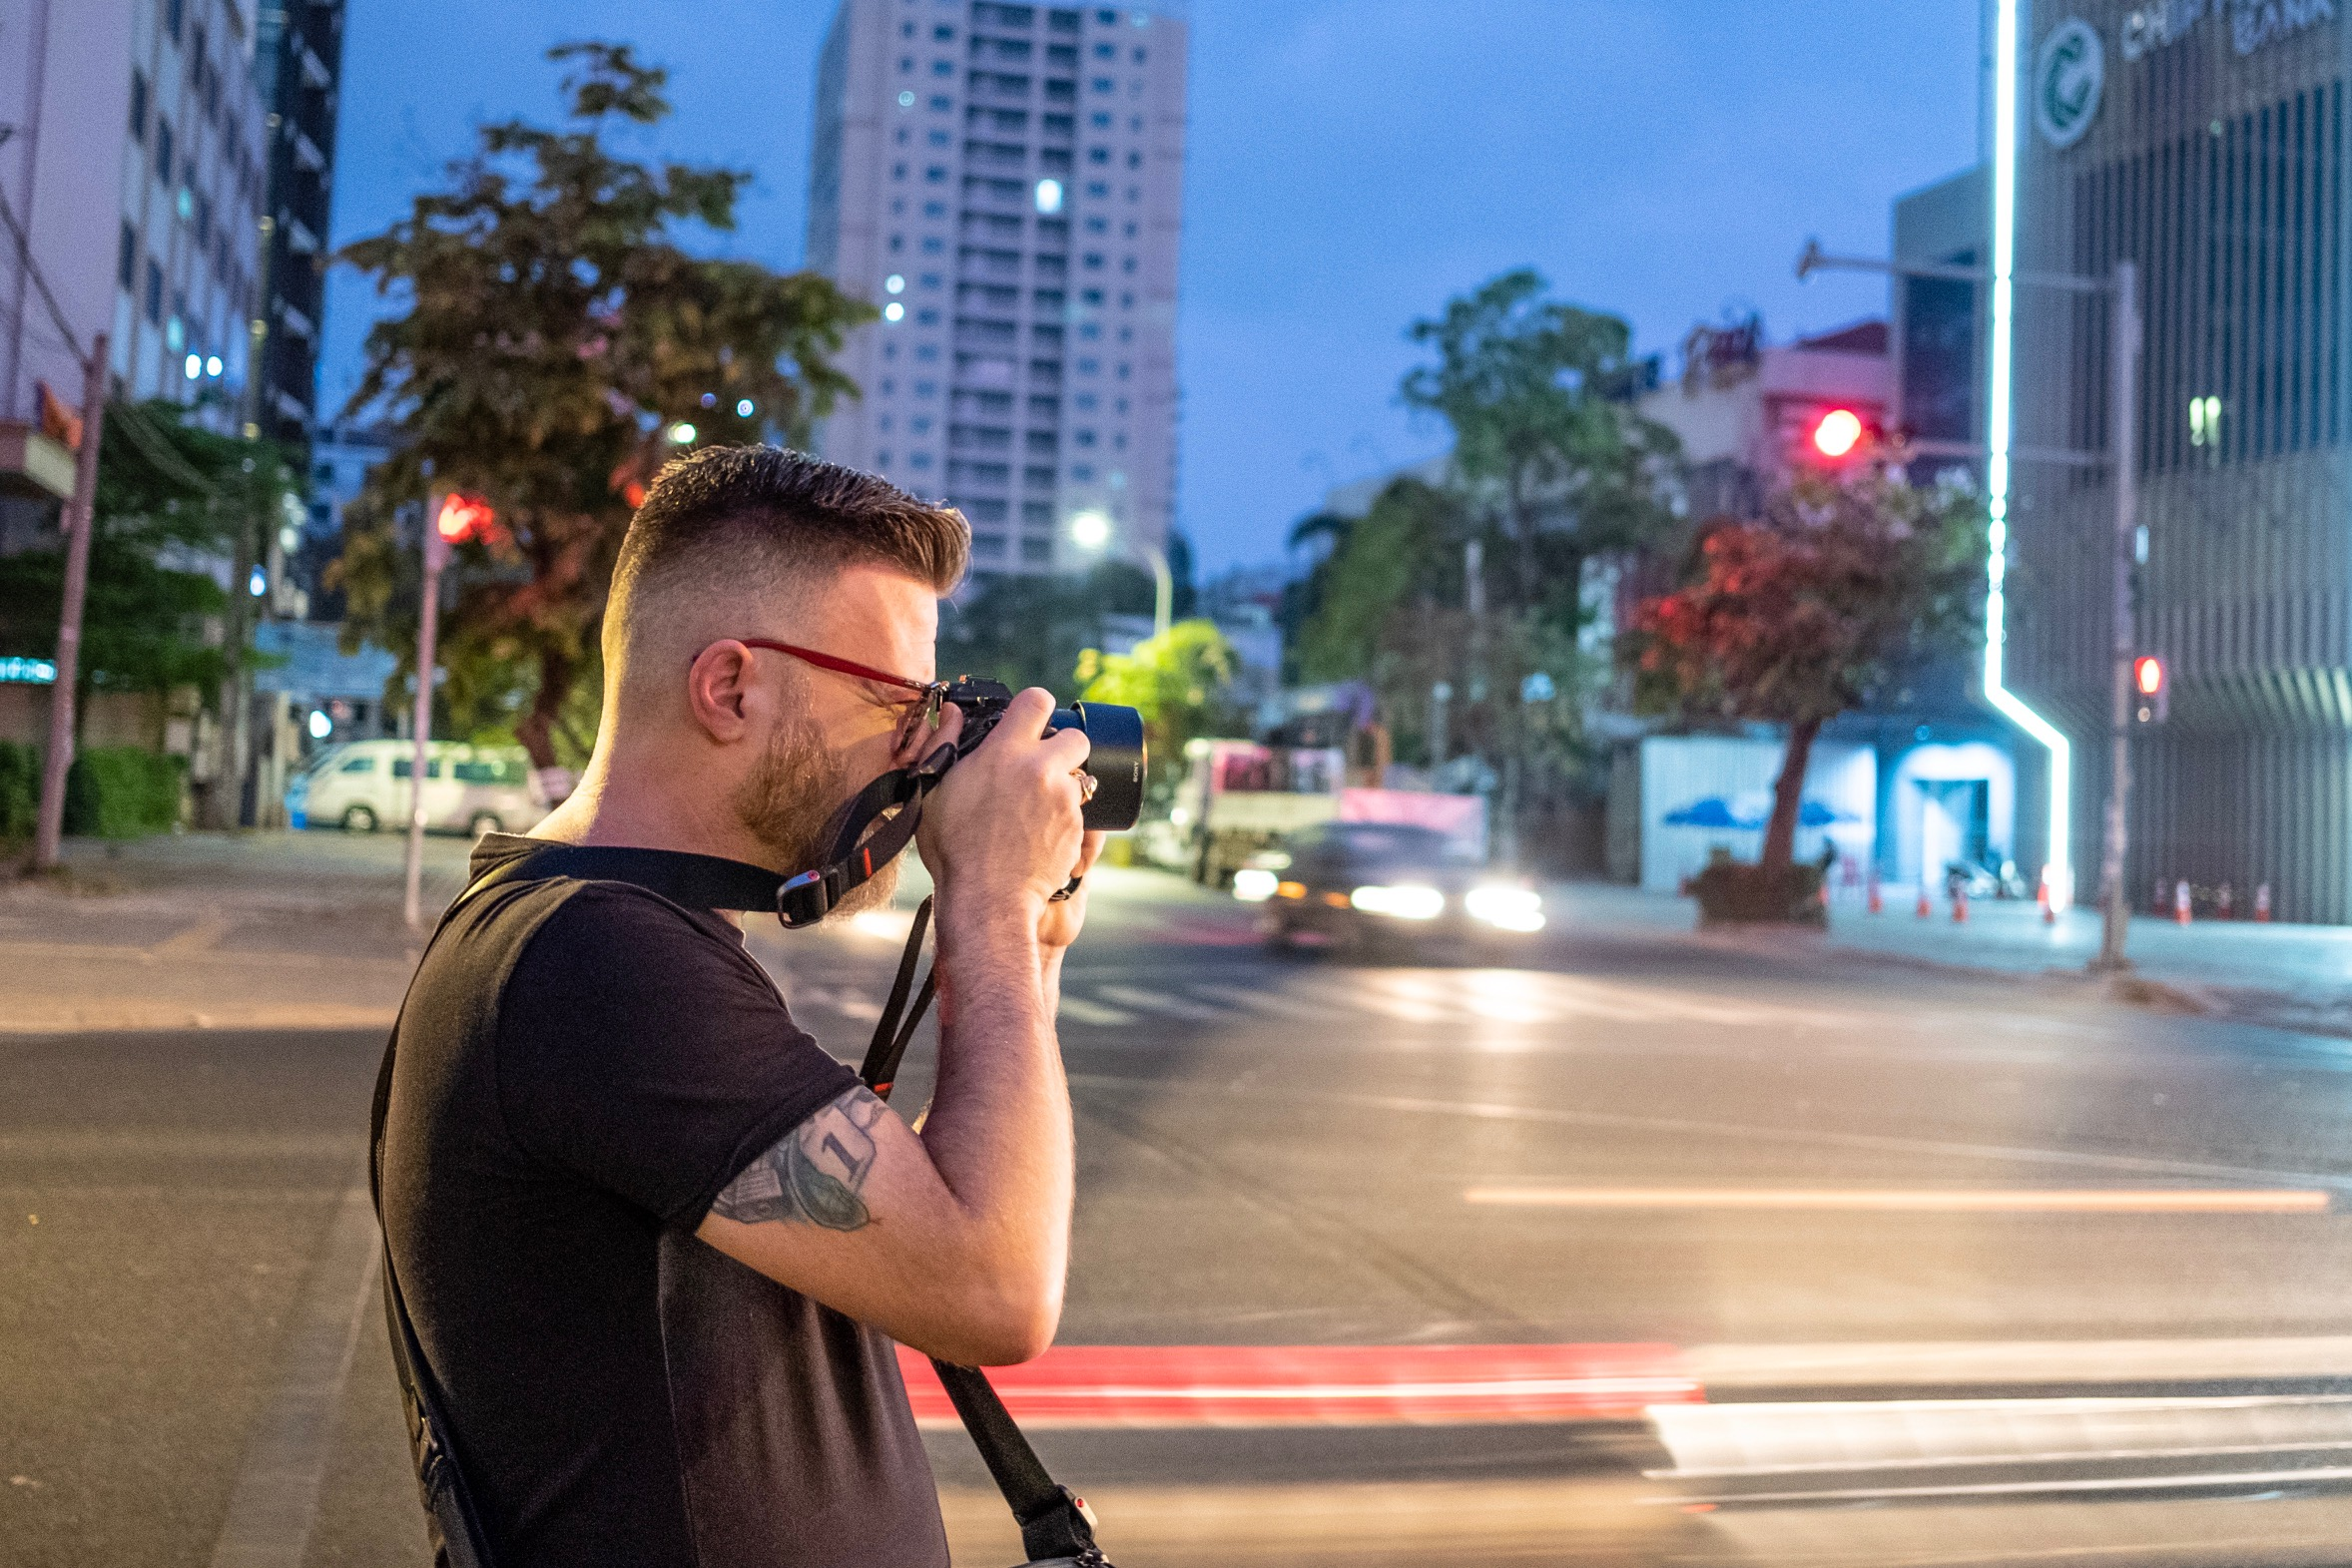 Me, up early taking photos around Phnom Penh.